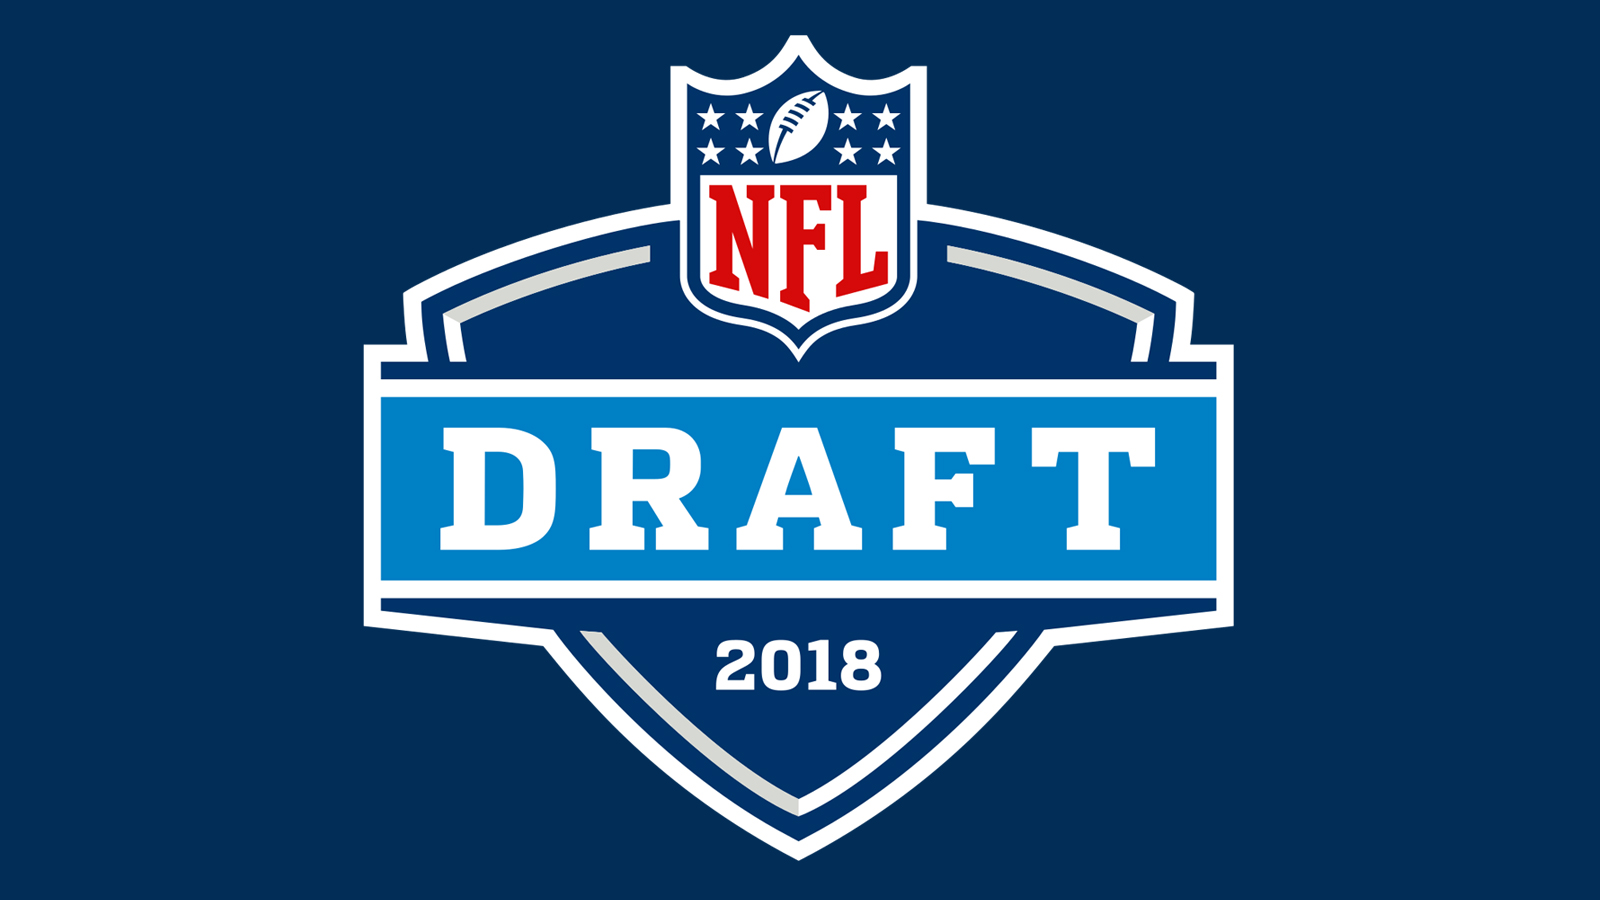 2018 NFL Draft Central - University of Michigan Athletics 3e63eed3fc